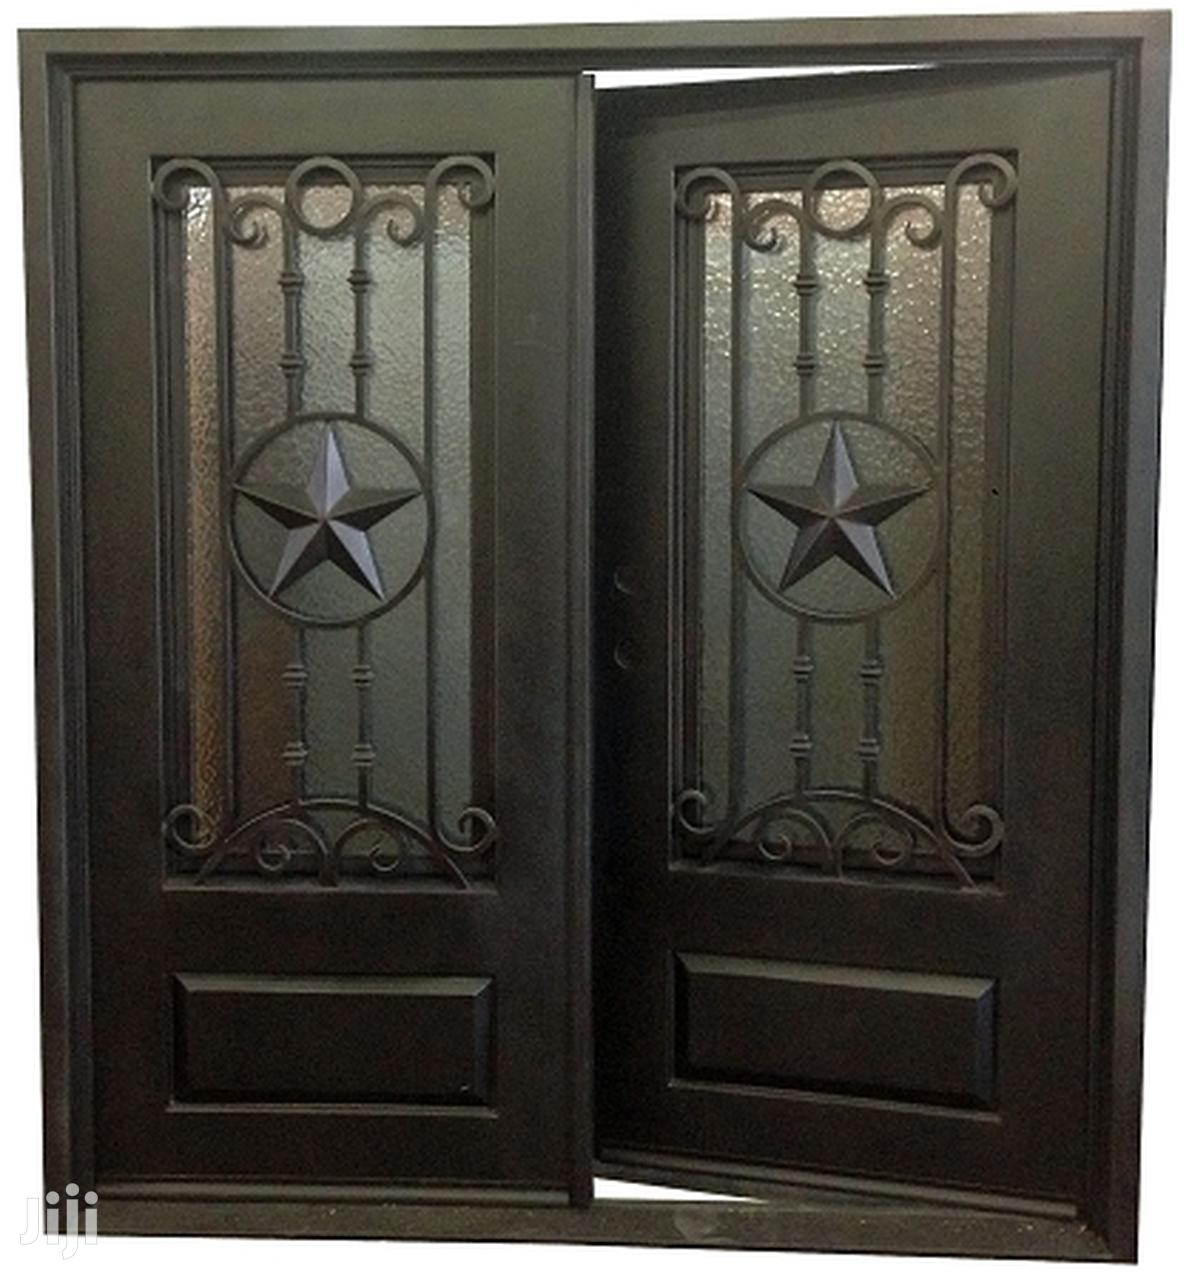 S090919 Wrought Iron Doors B